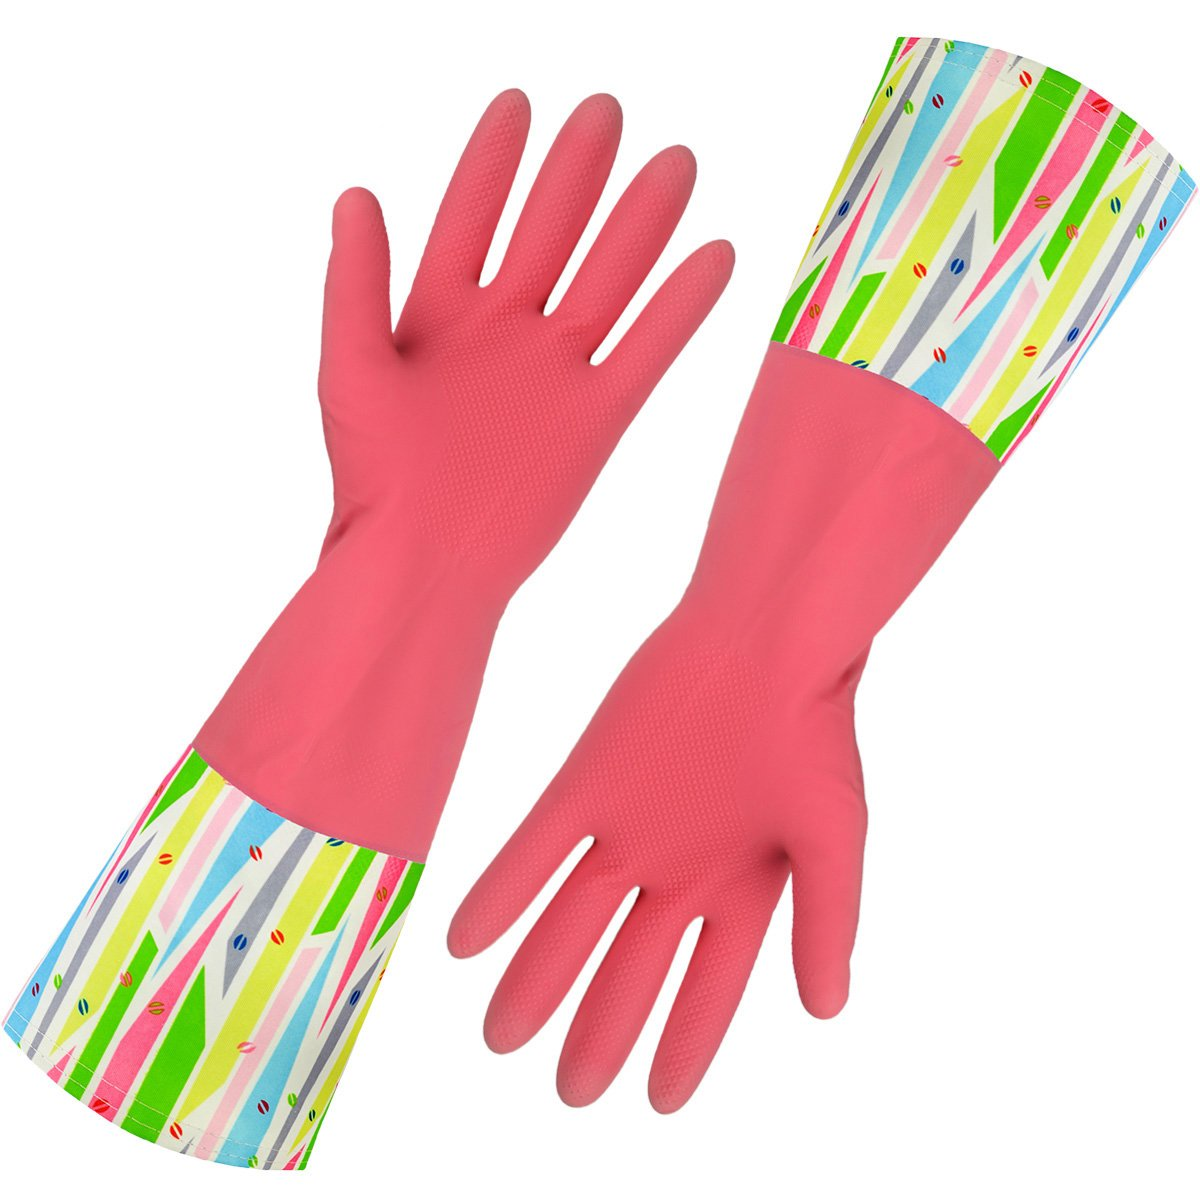 Rubber Household Gloves, Reusable Long Latex Kitchen Cleaning Gloves, with Cotton Lining (Pink 2 Pairs) by Cleanbear (Image #1)